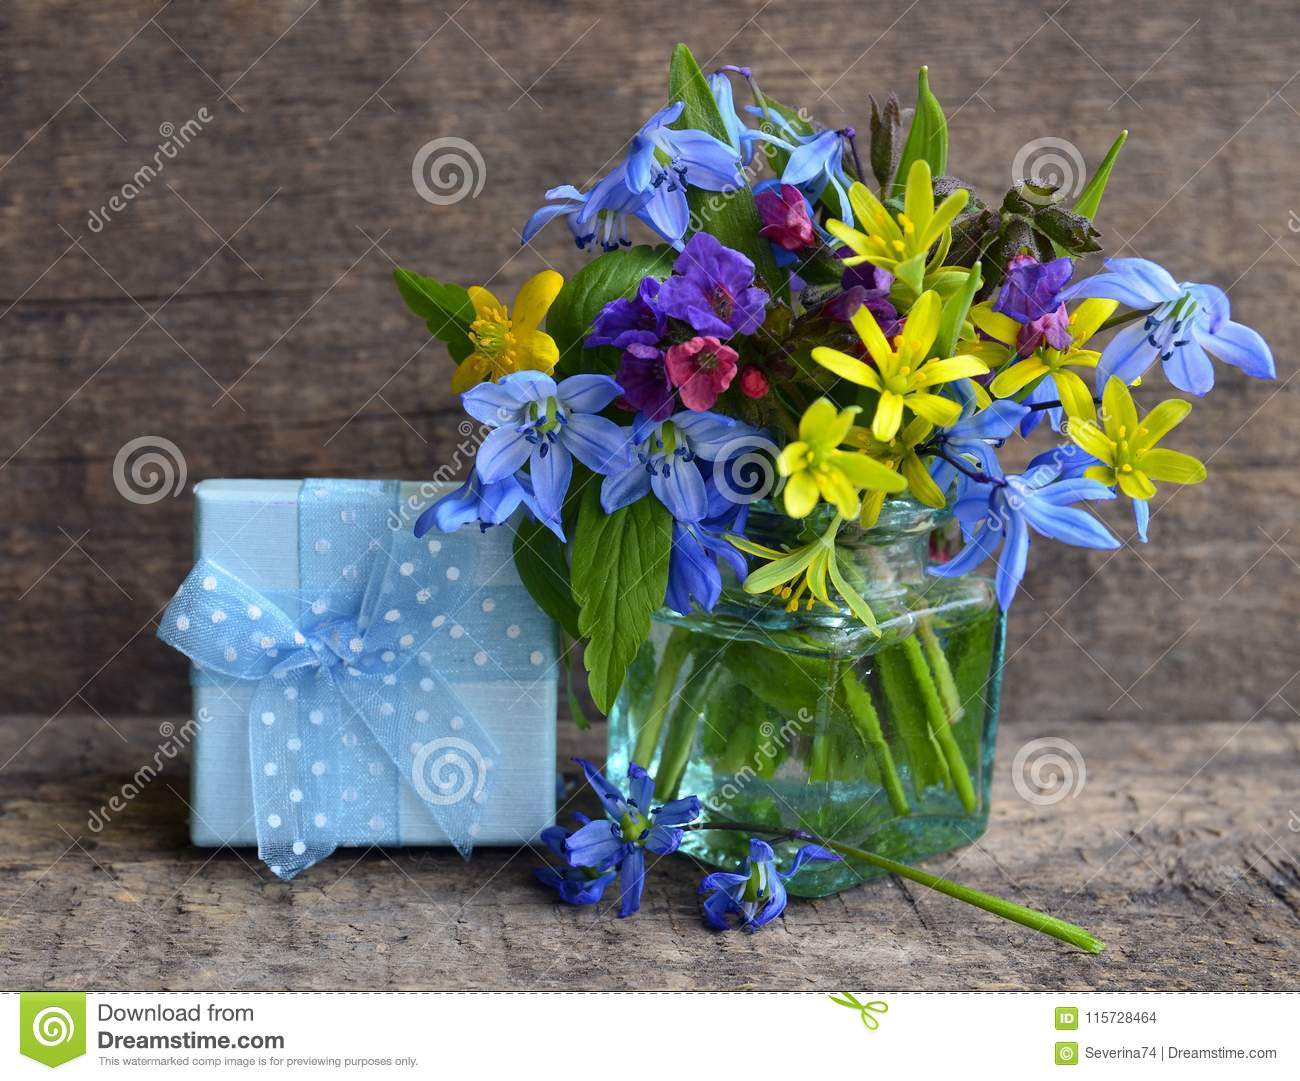 old blue glass vases of bright spring flowers bouquet in a glass vase and gift box on old with regard to bright spring flowers bouquet in a glass vase and gift box on old wooden background